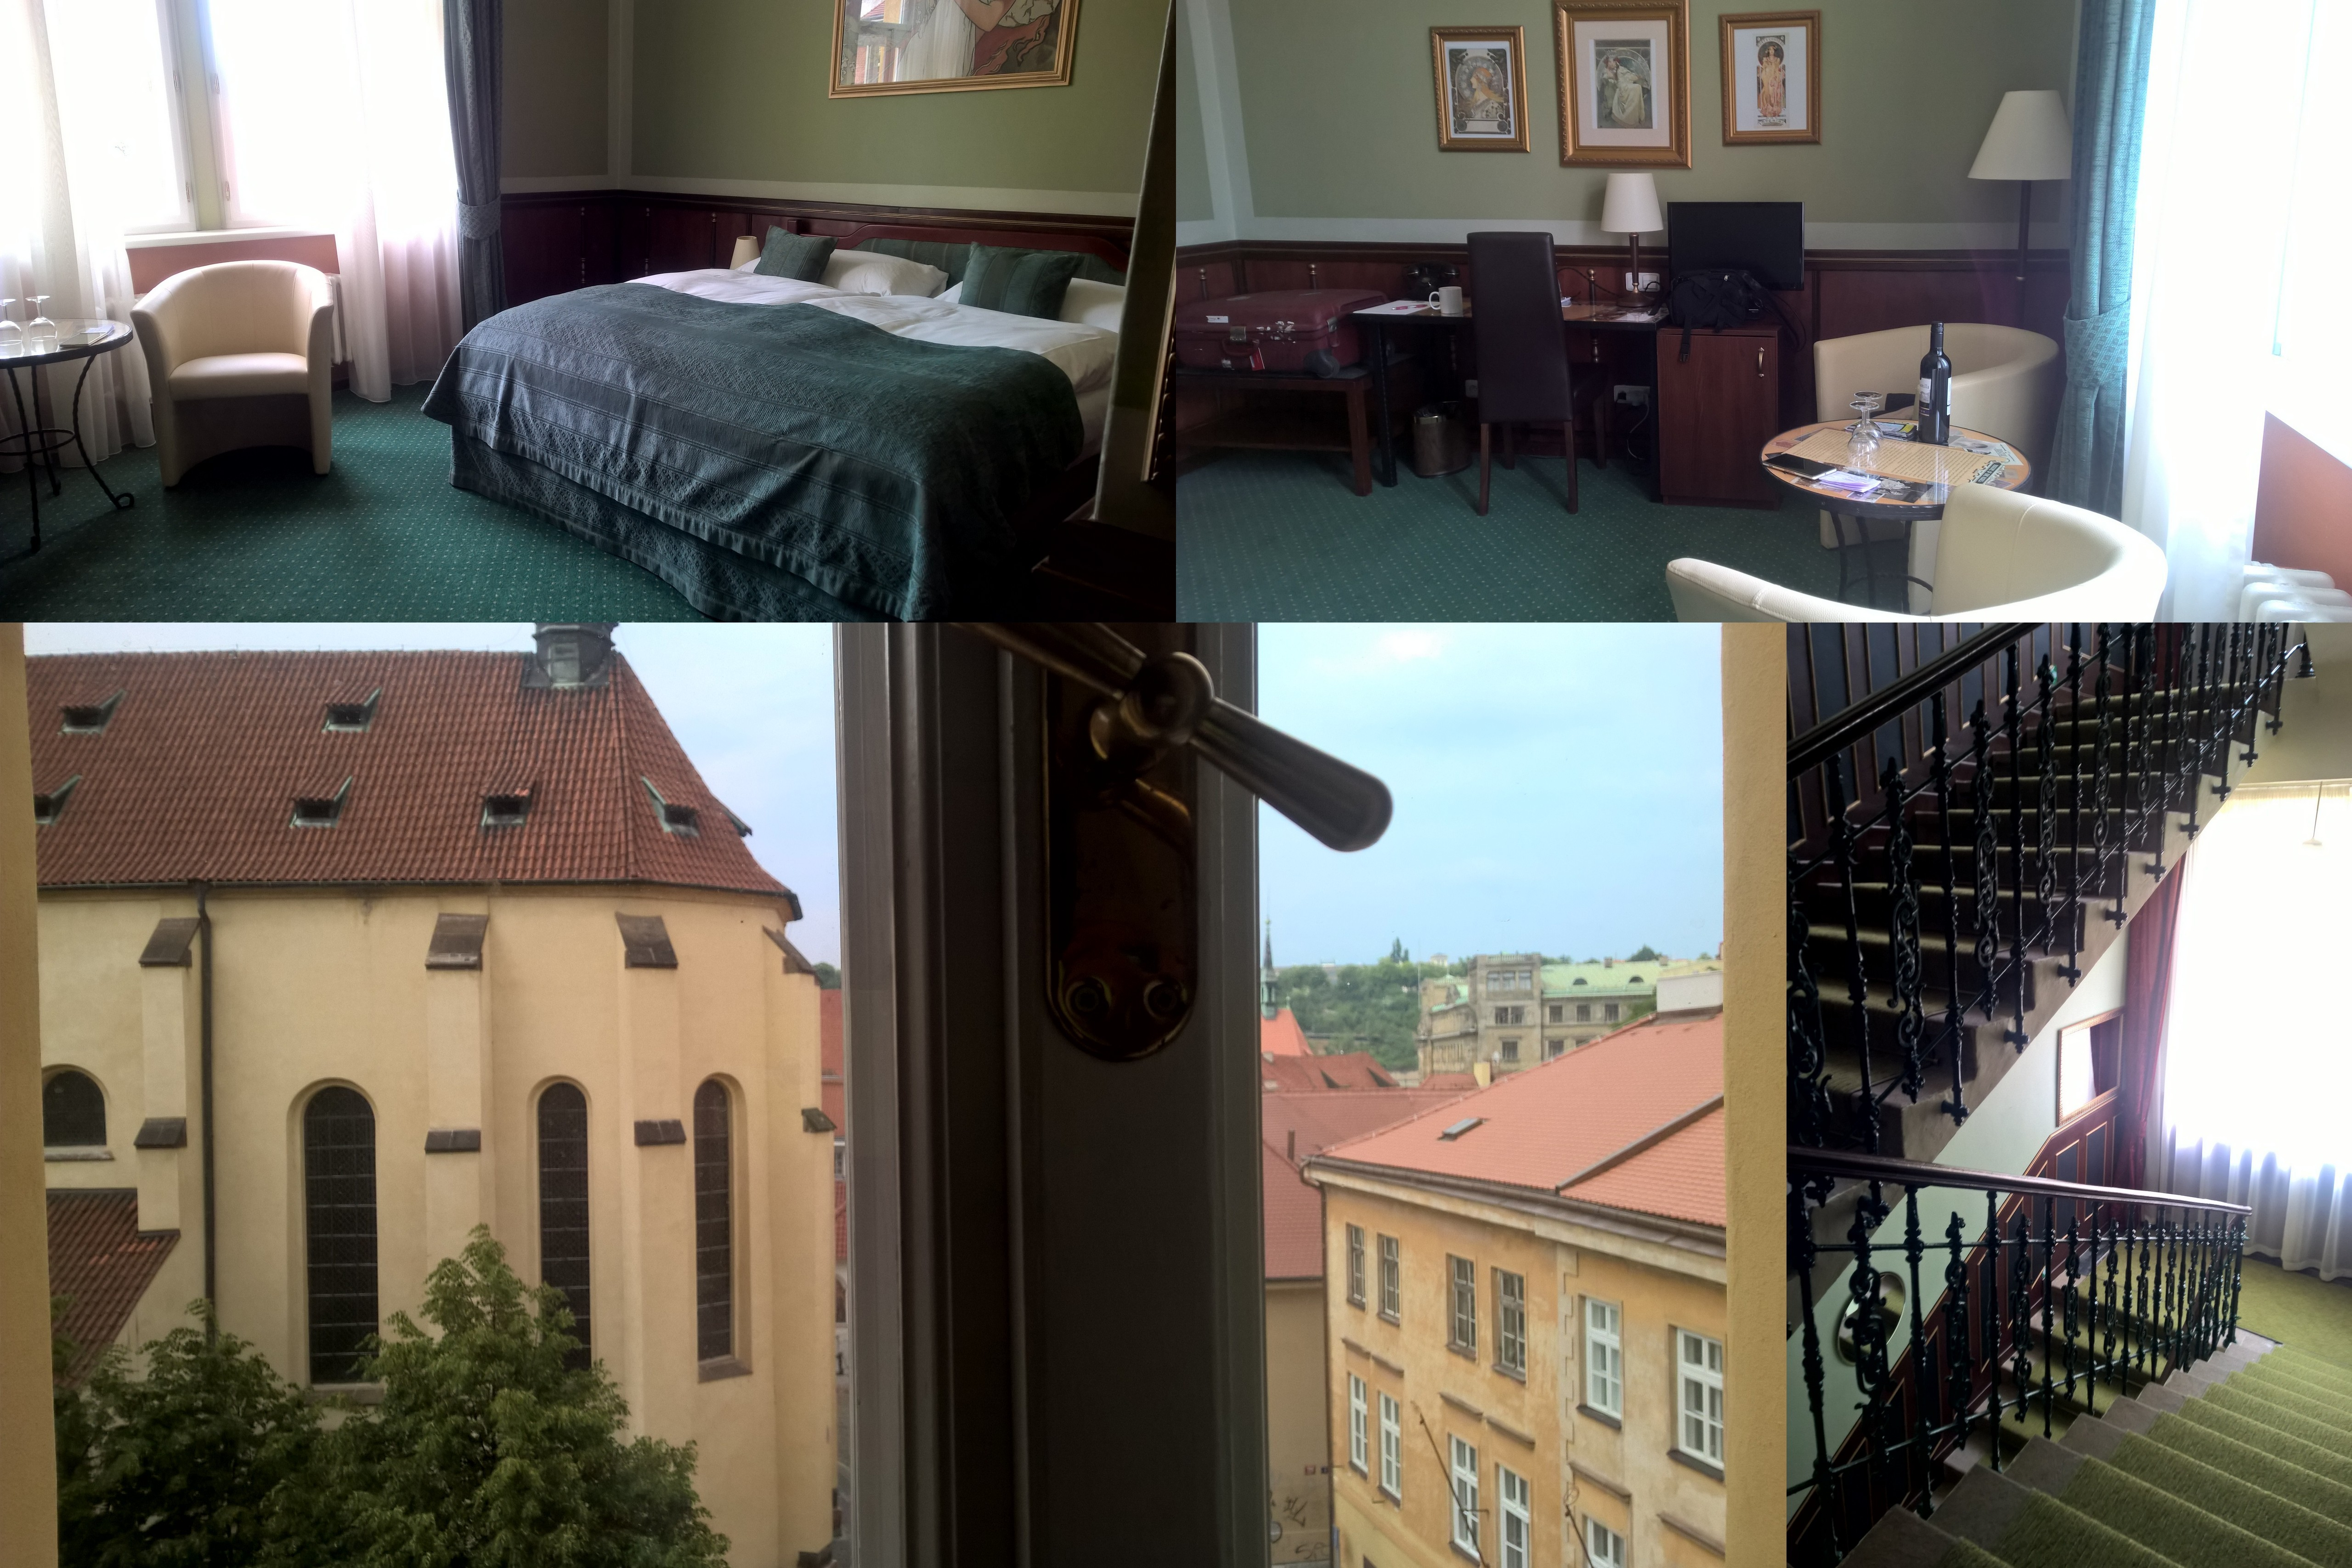 Where to stay in prague review of hotel hastal in prague for Best place to stay in prague